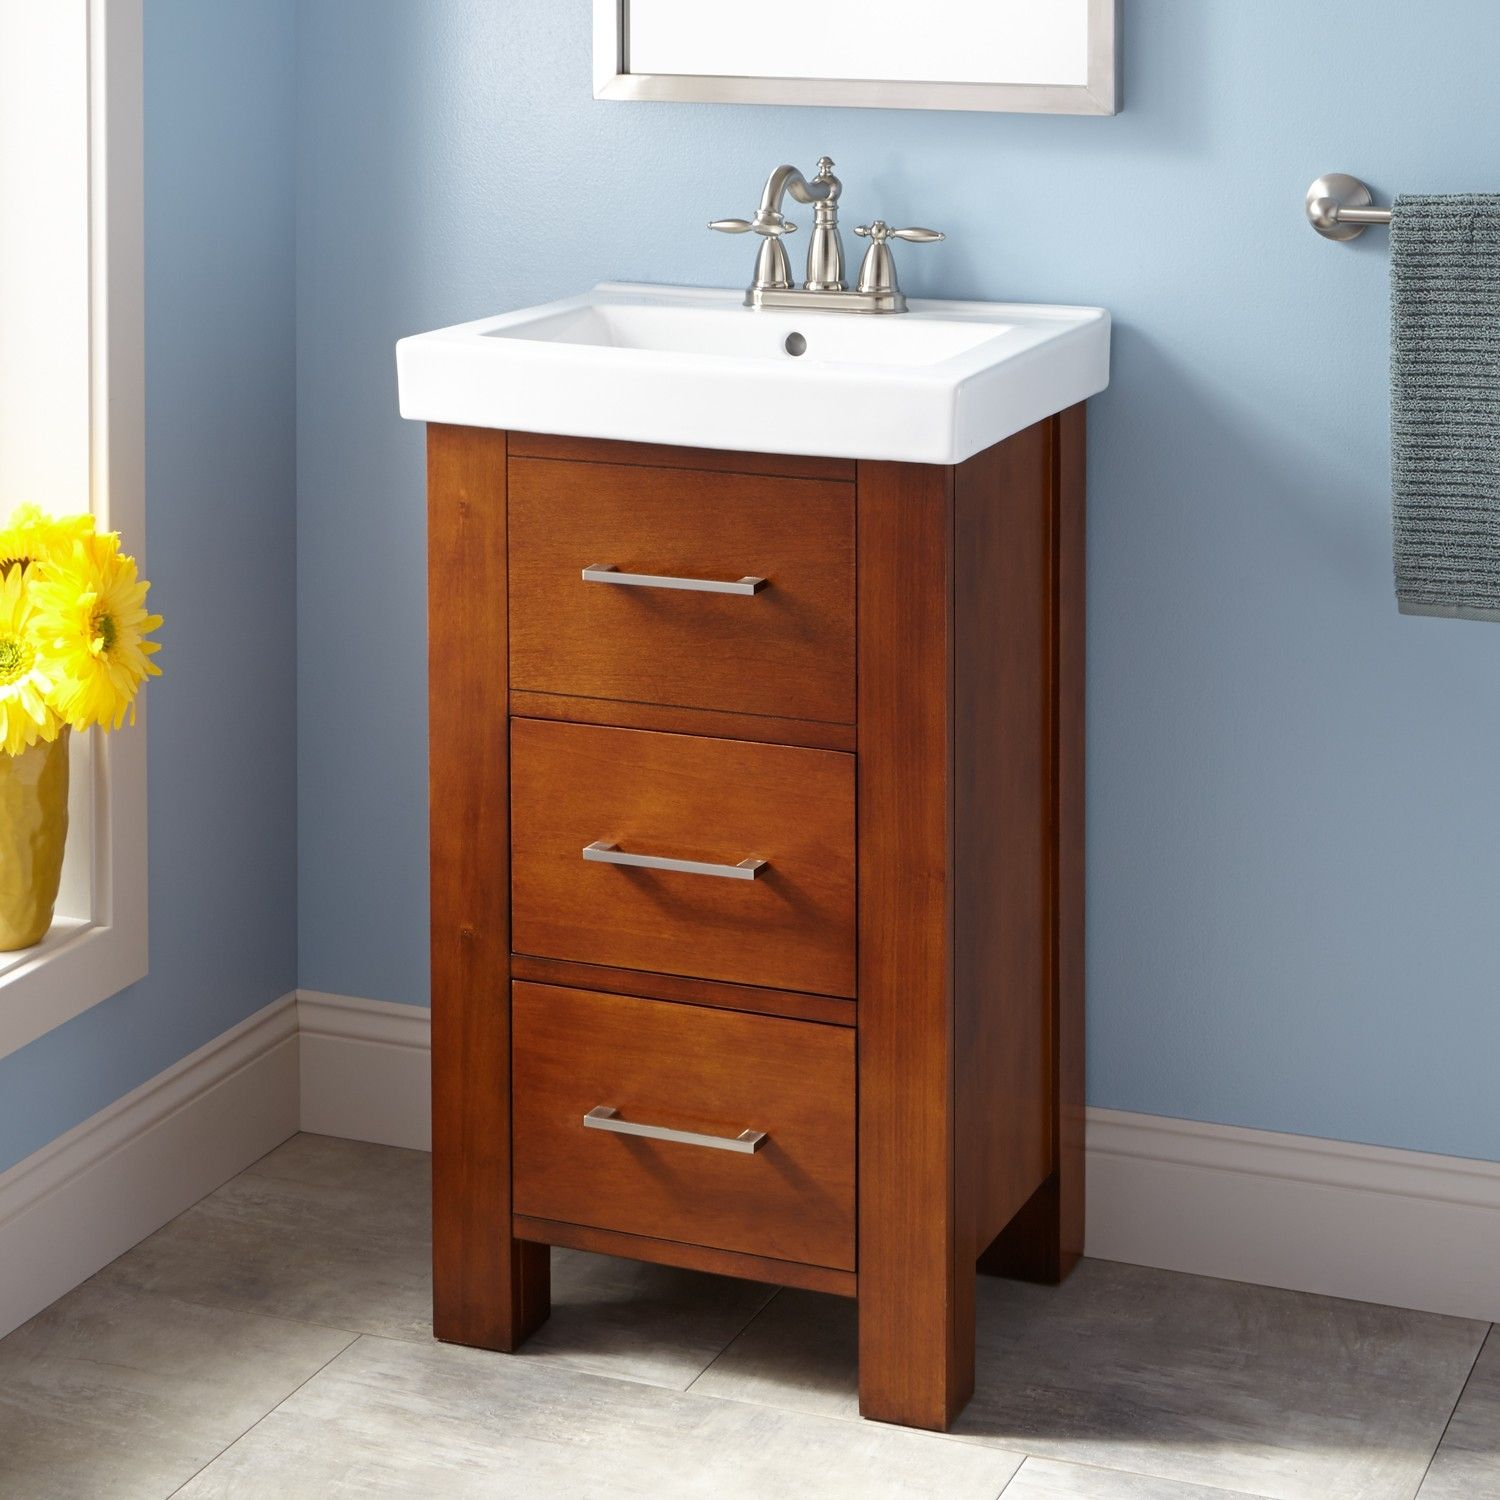 20 inch bathroom vanity ikea | 20 inch bathroom vanity, oak